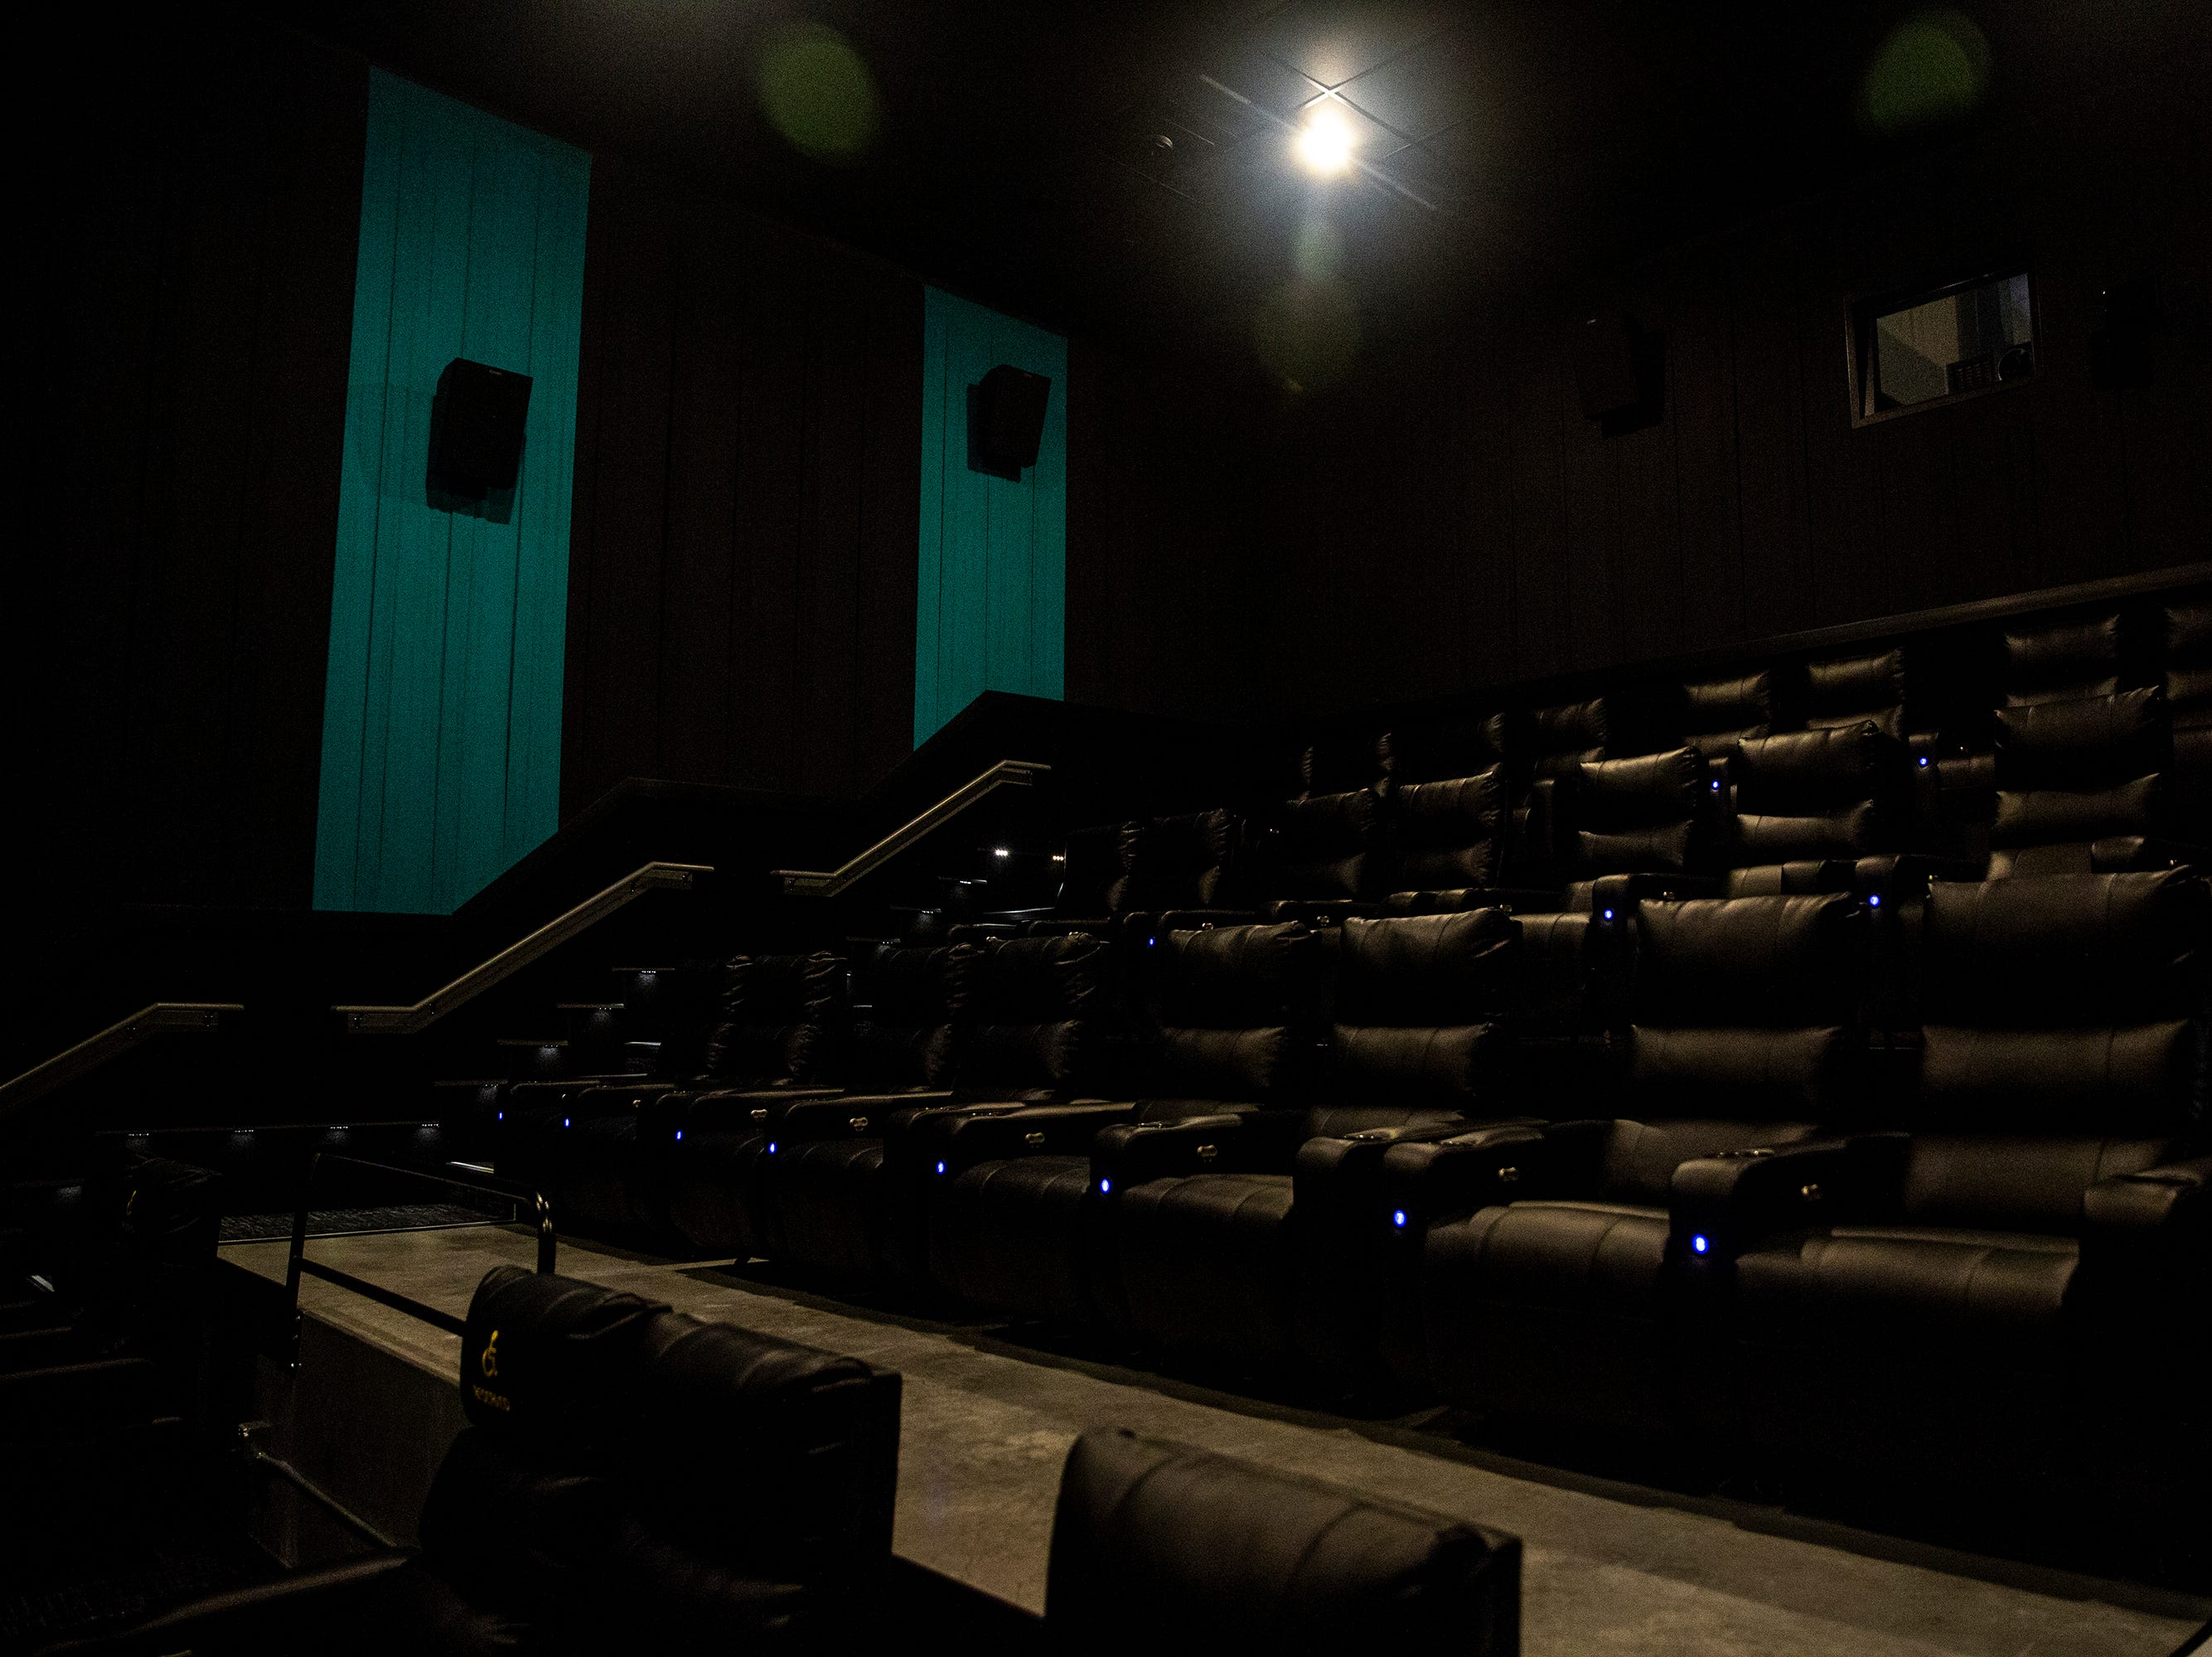 All of the theater seats at B & B Ankeny 12 & B-Roll Bowling are reclinable and heated, on Sunday, Dec. 9, 2018, in Ankeny.